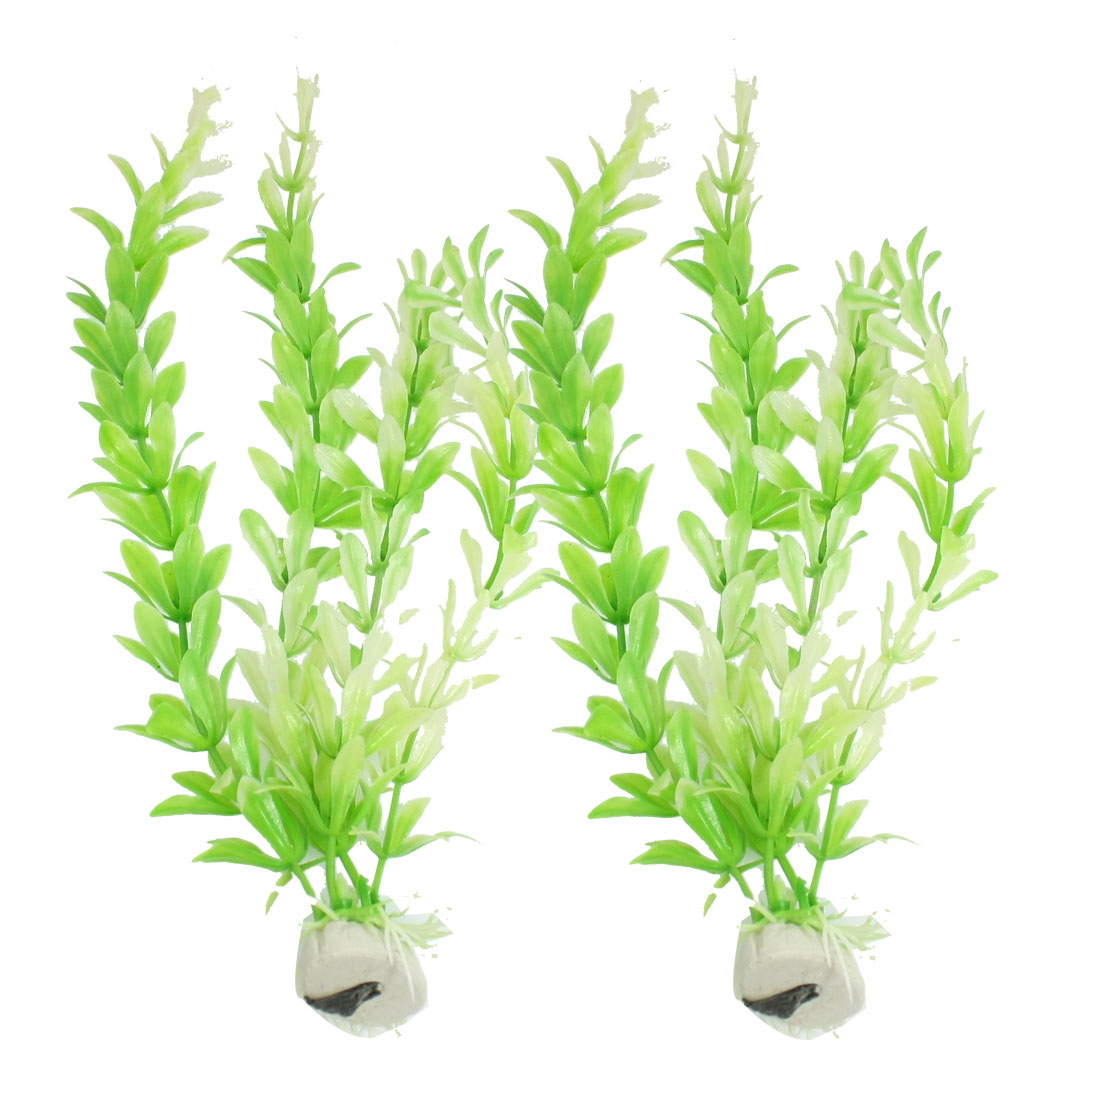 2 Pcs Aquarium Tank Green White Plastic Artificial Grass Plant 10.6""